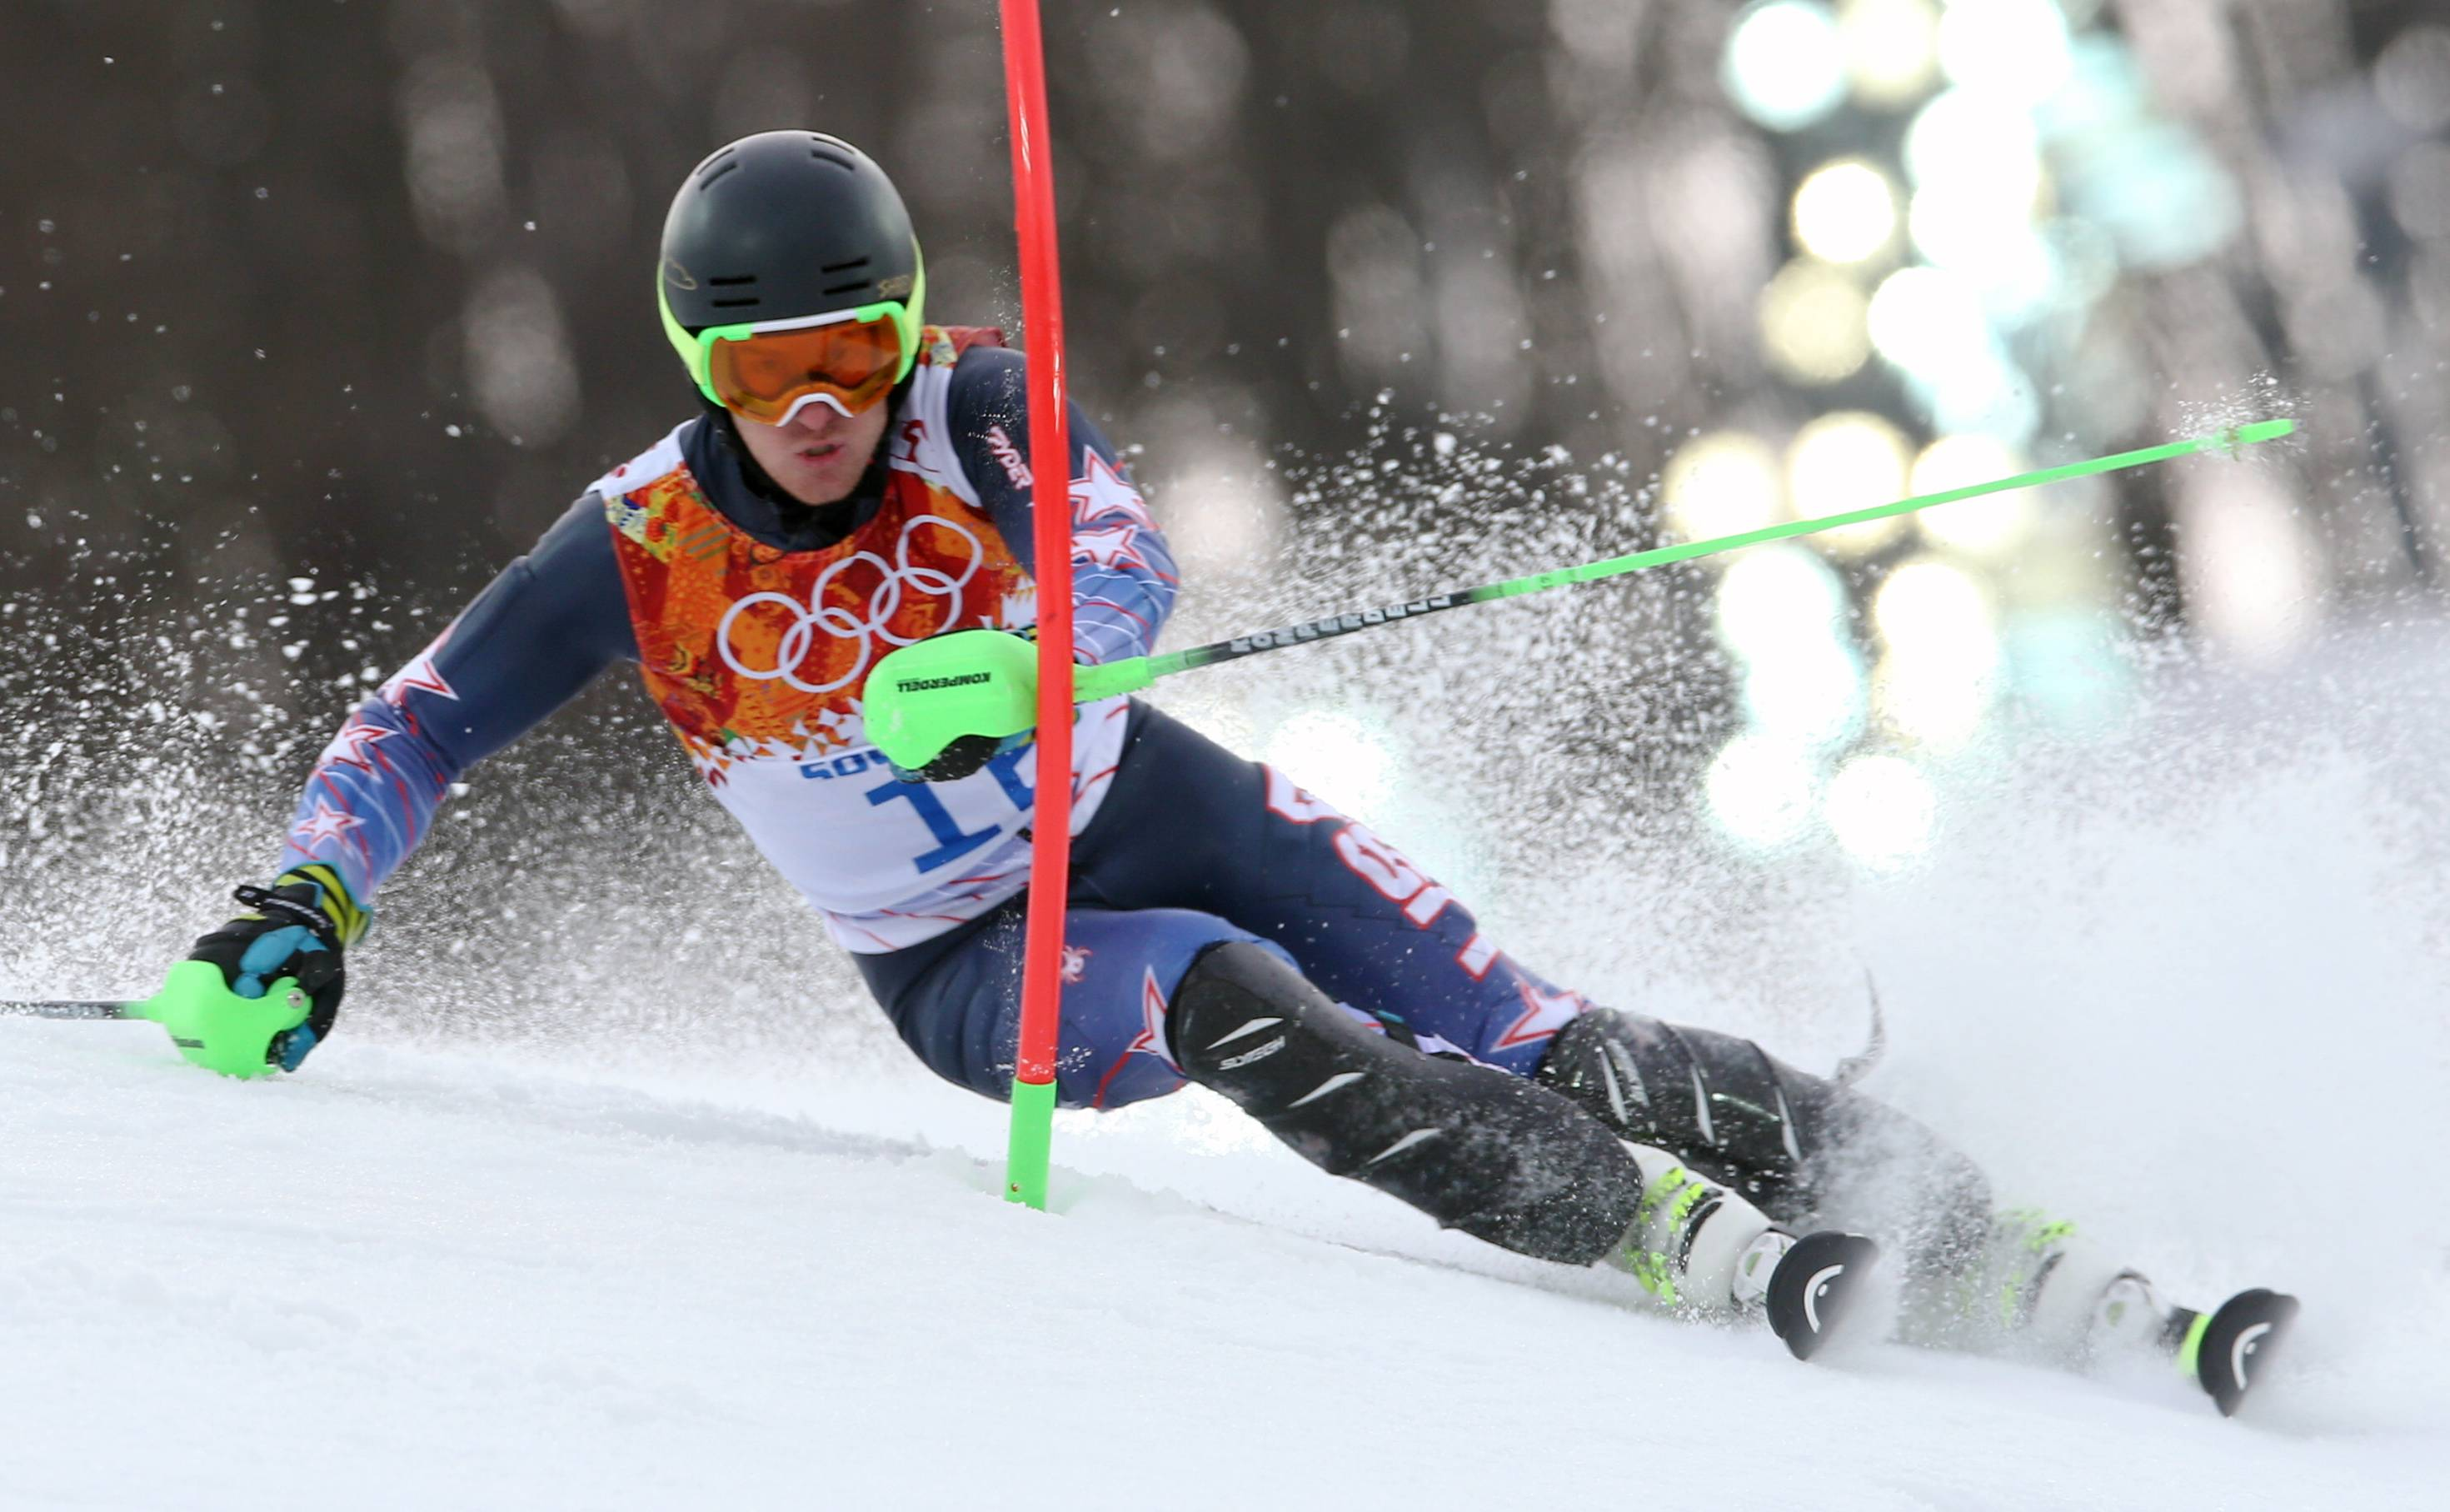 United States' Ted Ligety skis during the first run of the men's slalom at the Sochi 2014 Winter Olympics, Saturday, Feb. 22, 2014, in Krasnaya Polyana, Russia.